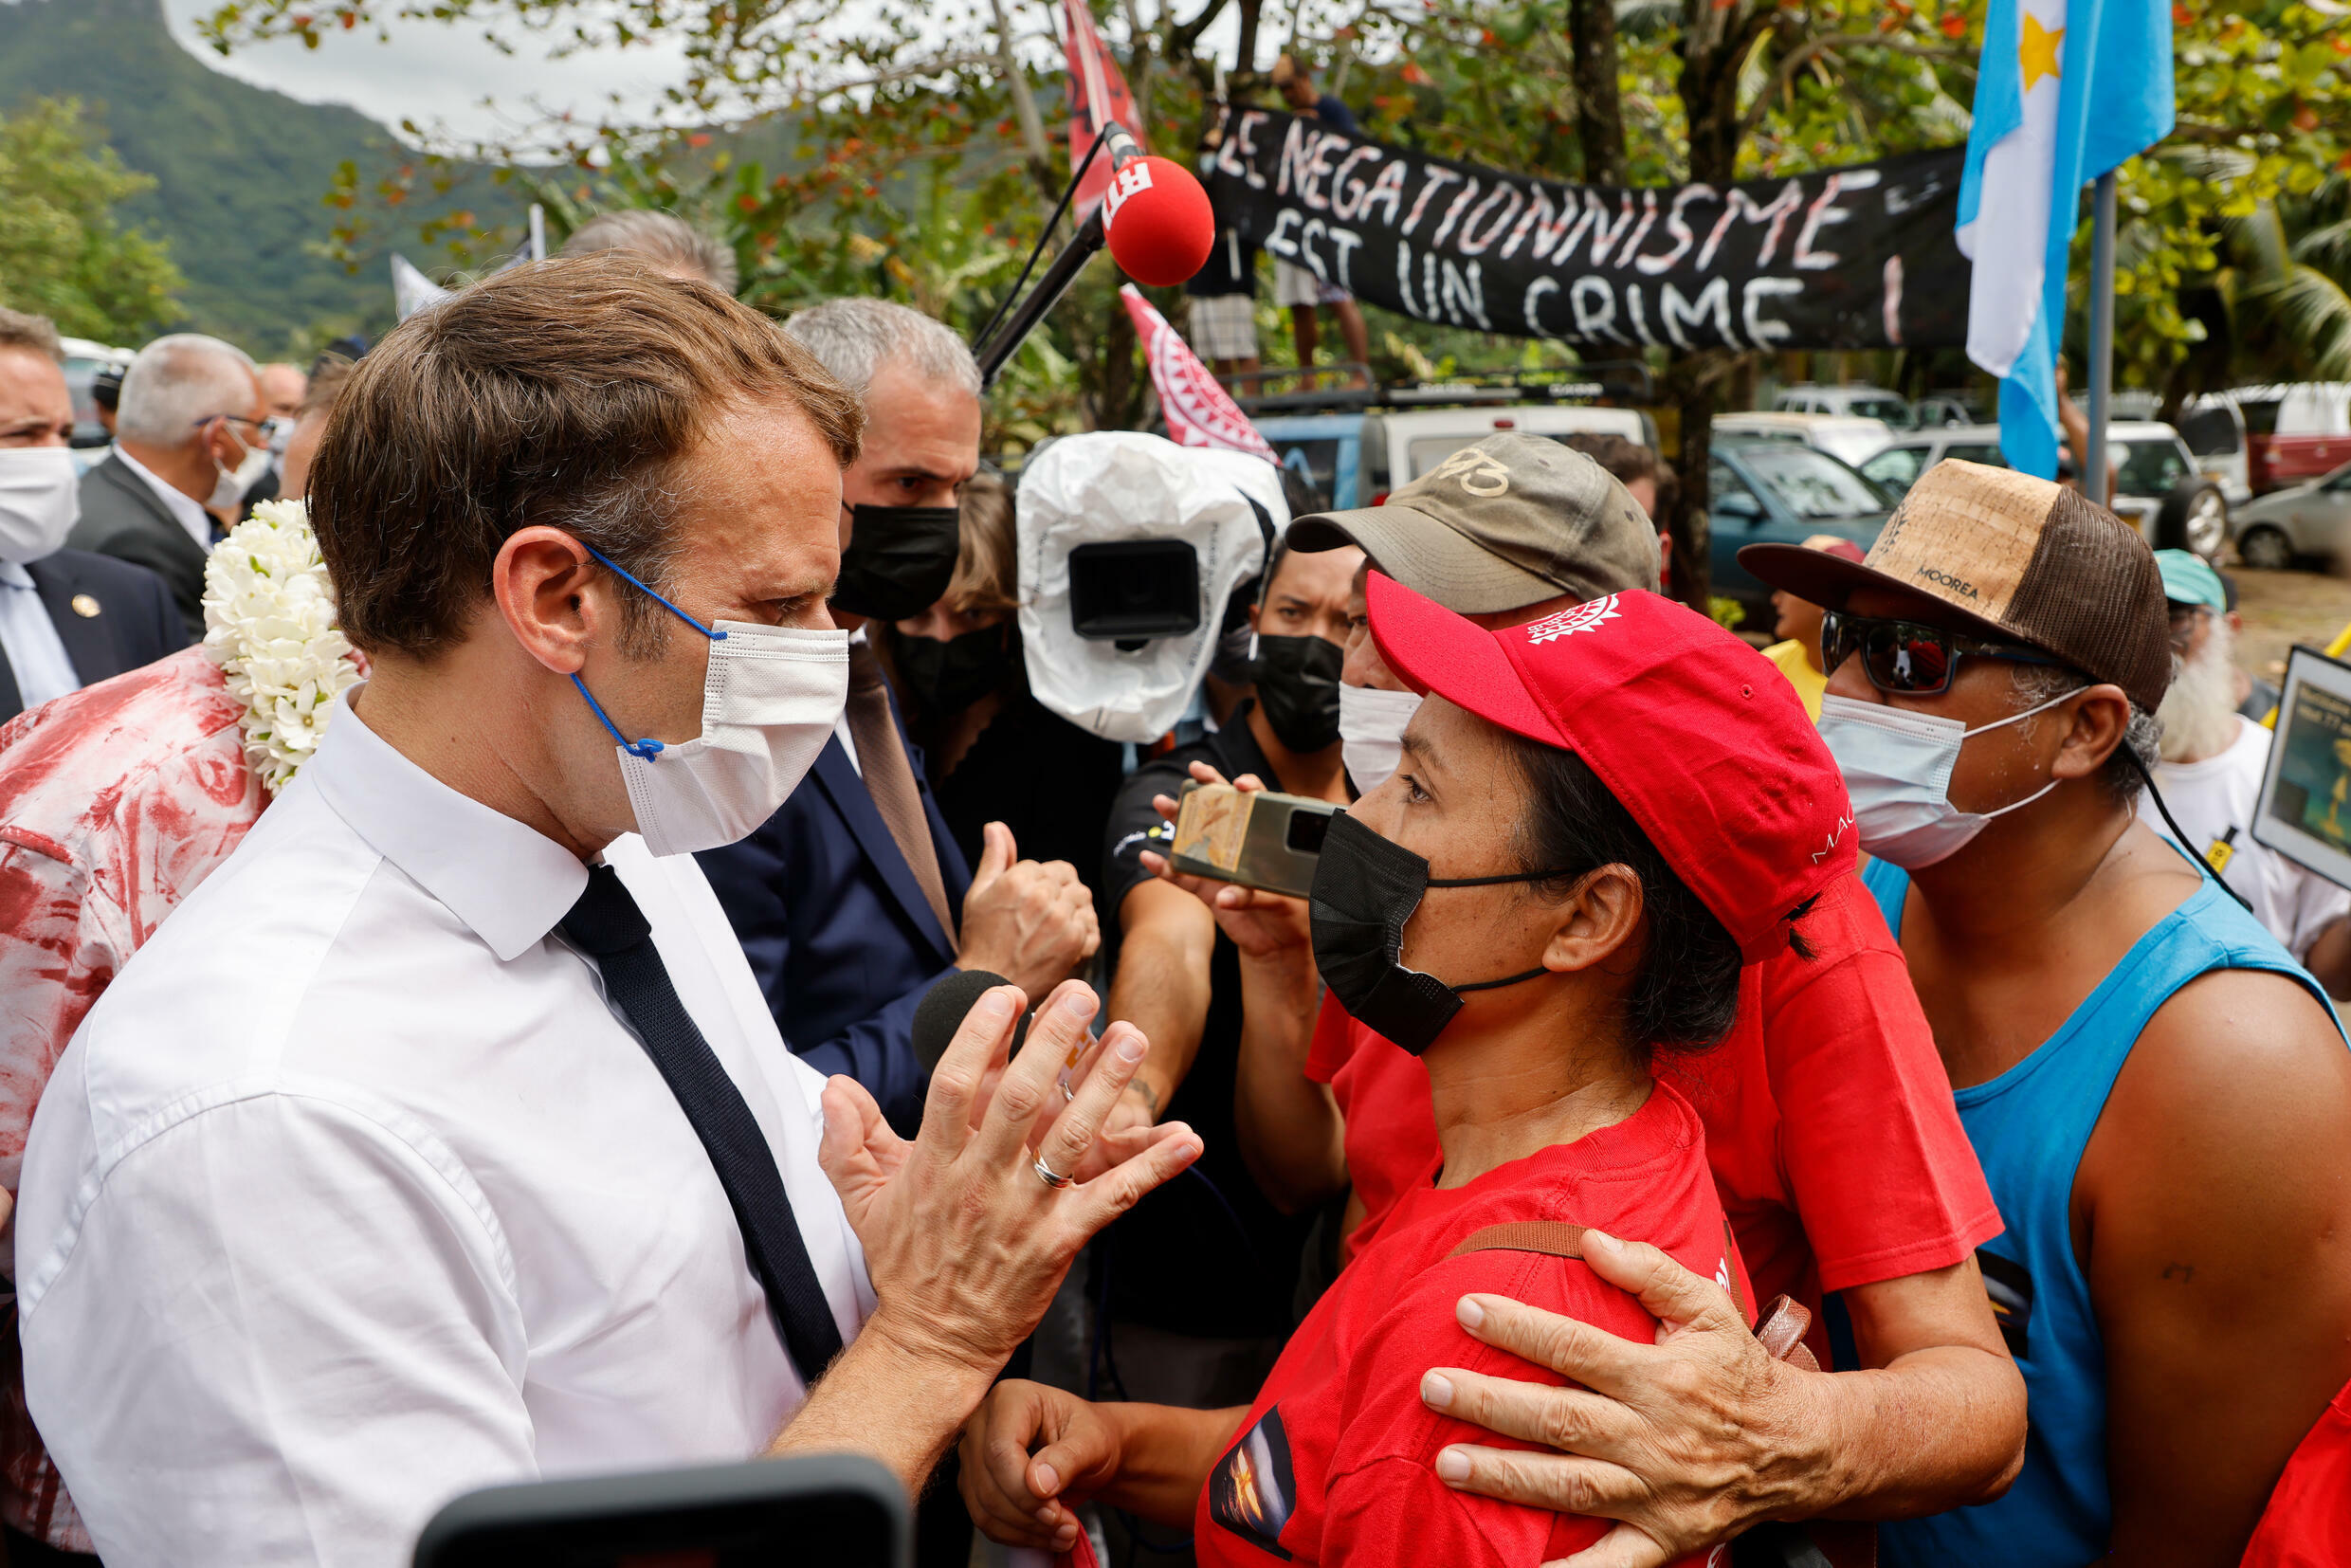 French President Emmanuel Macron stopped by the side of the road to talk to anti-nuclear protestors in French Polynesia